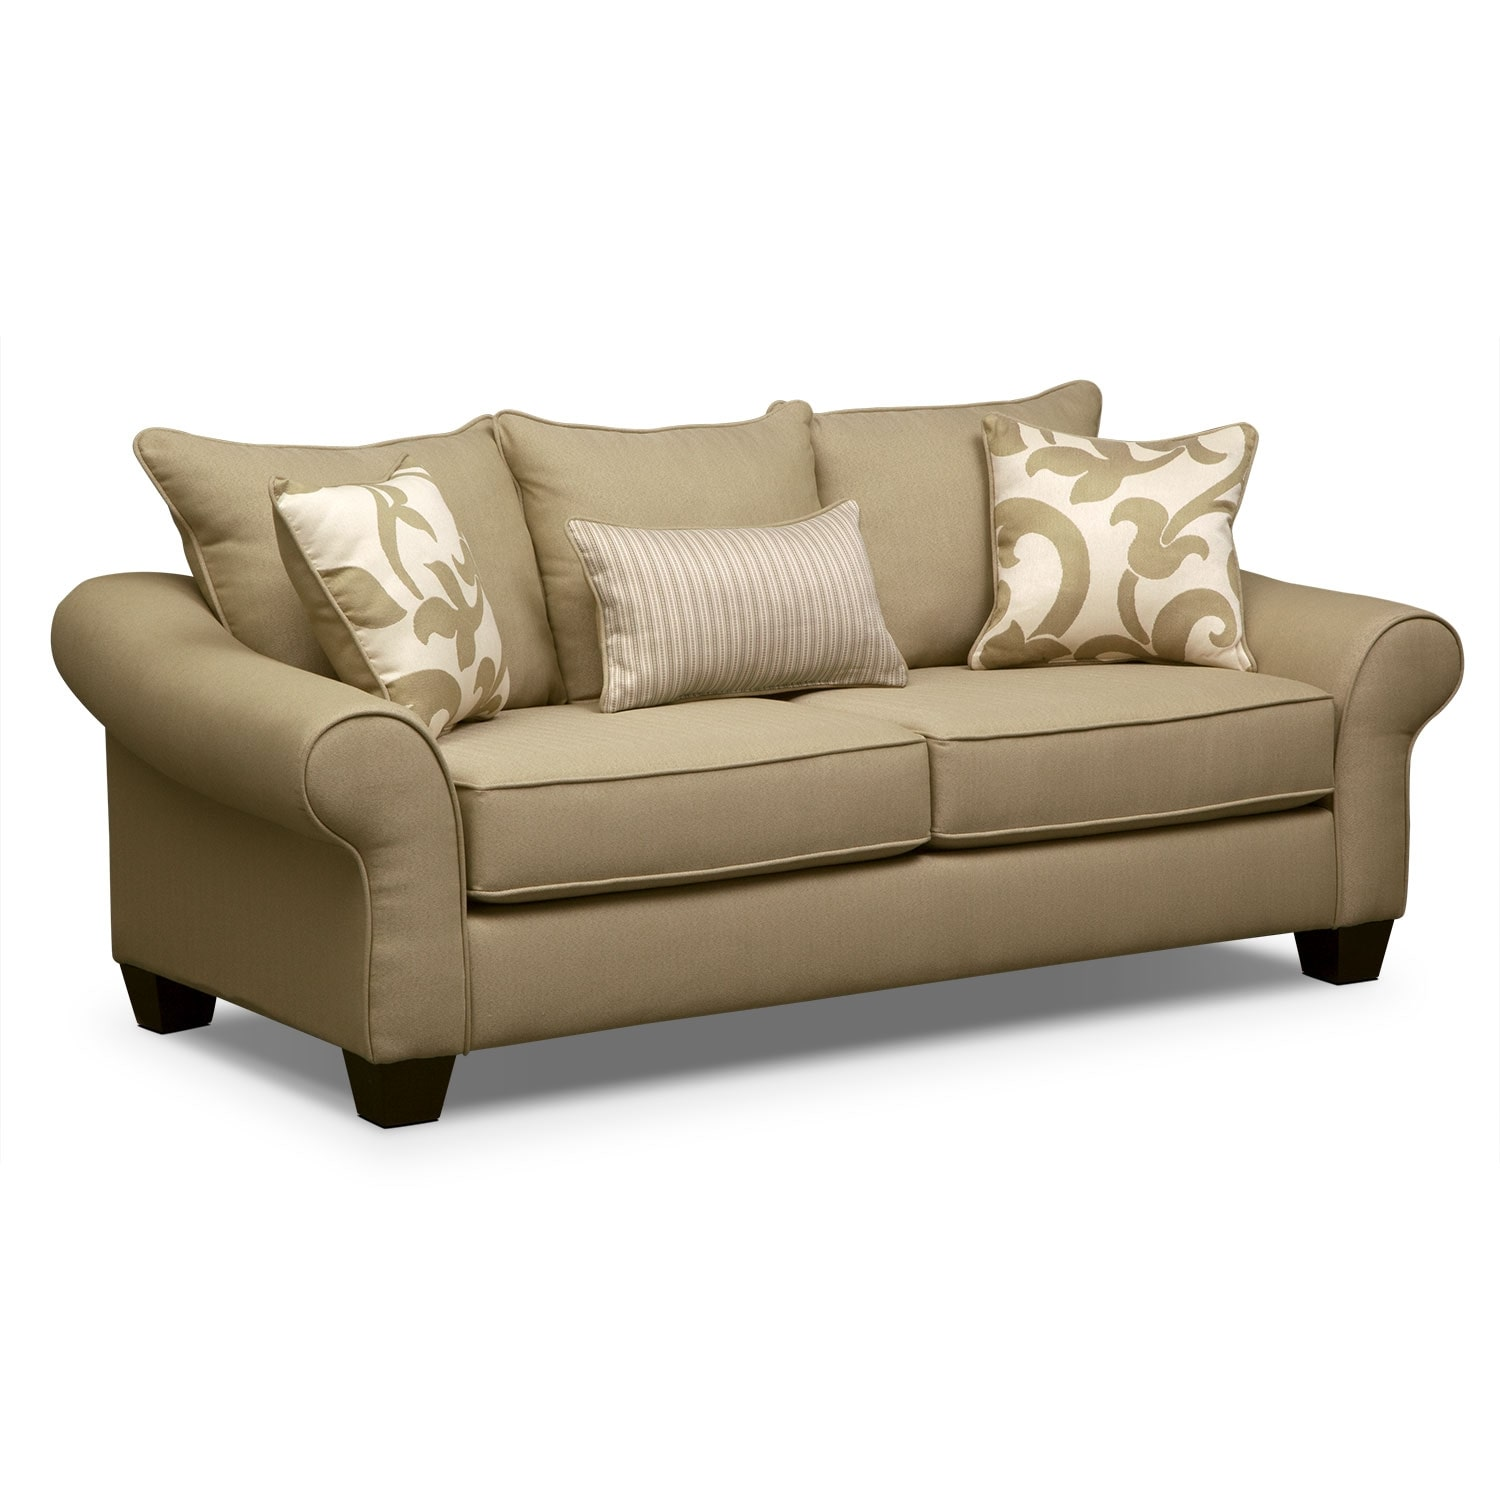 Living Room Furniture - Colette Full Memory Foam Sleeper Sofa - Khaki